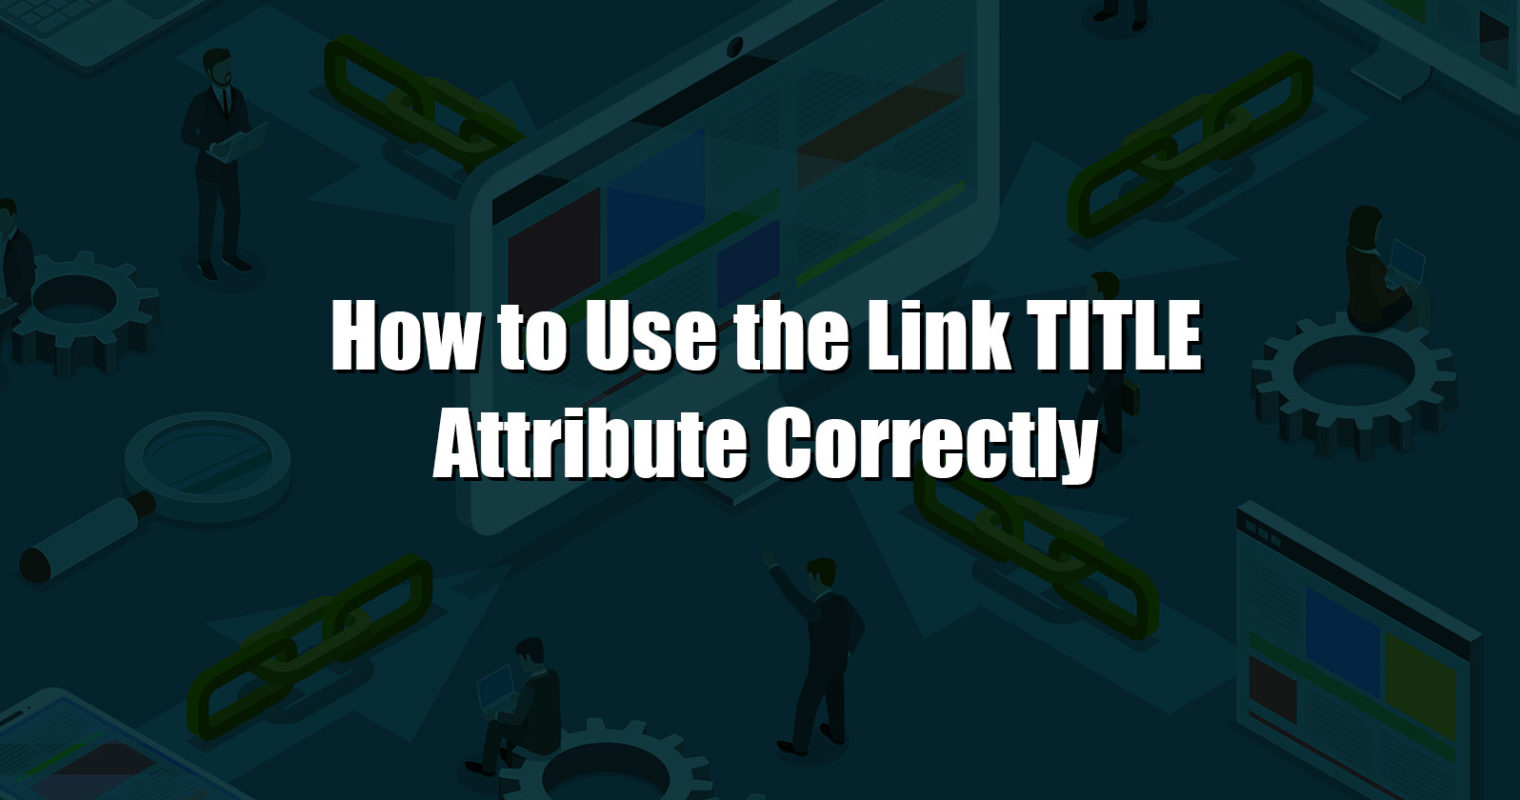 How to Use the Link Title Attribute Correctly